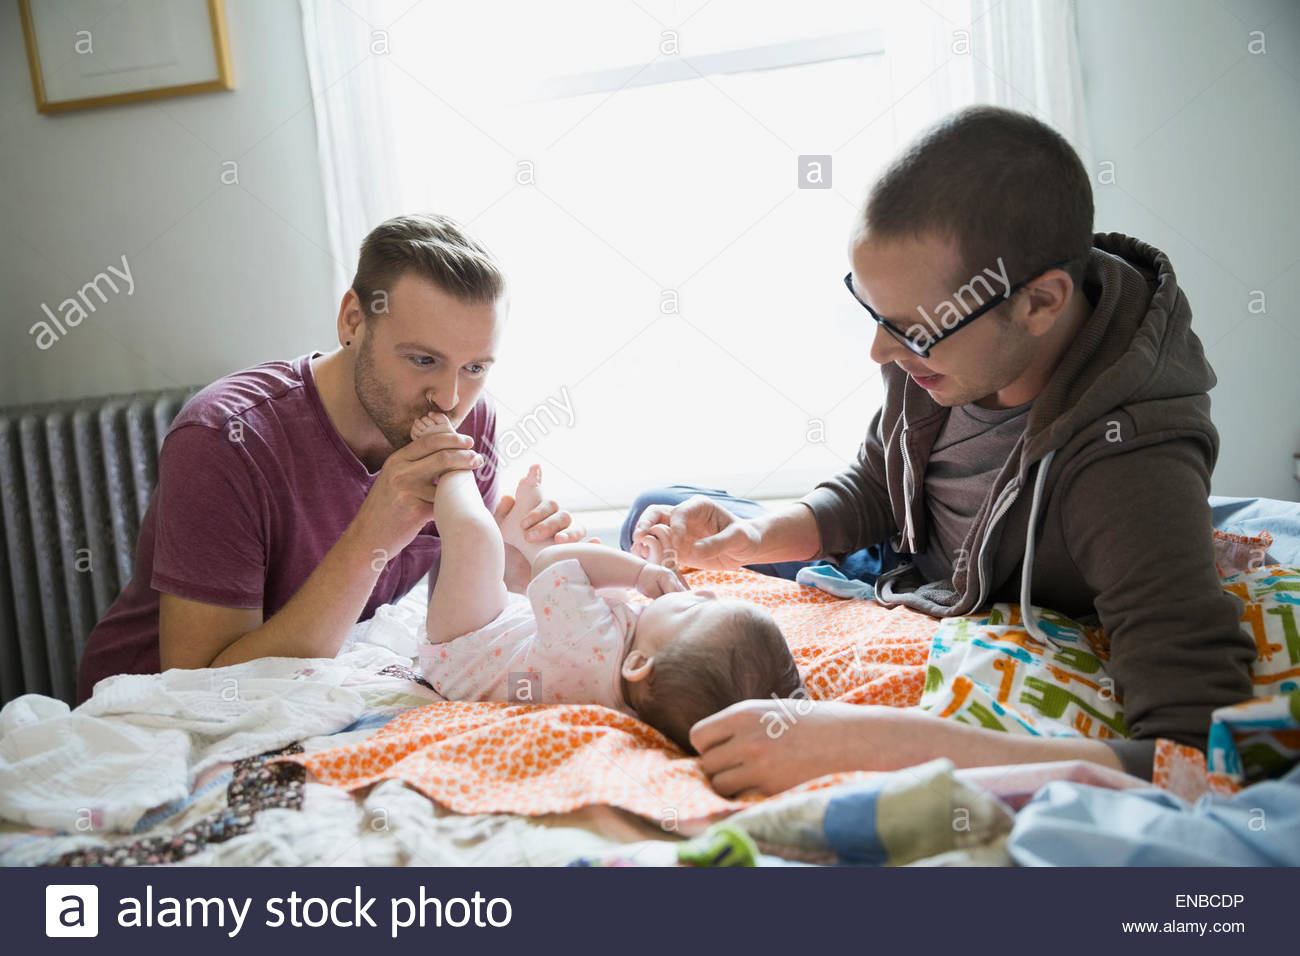 Homosexual couple playing with baby on bed - Stock Image